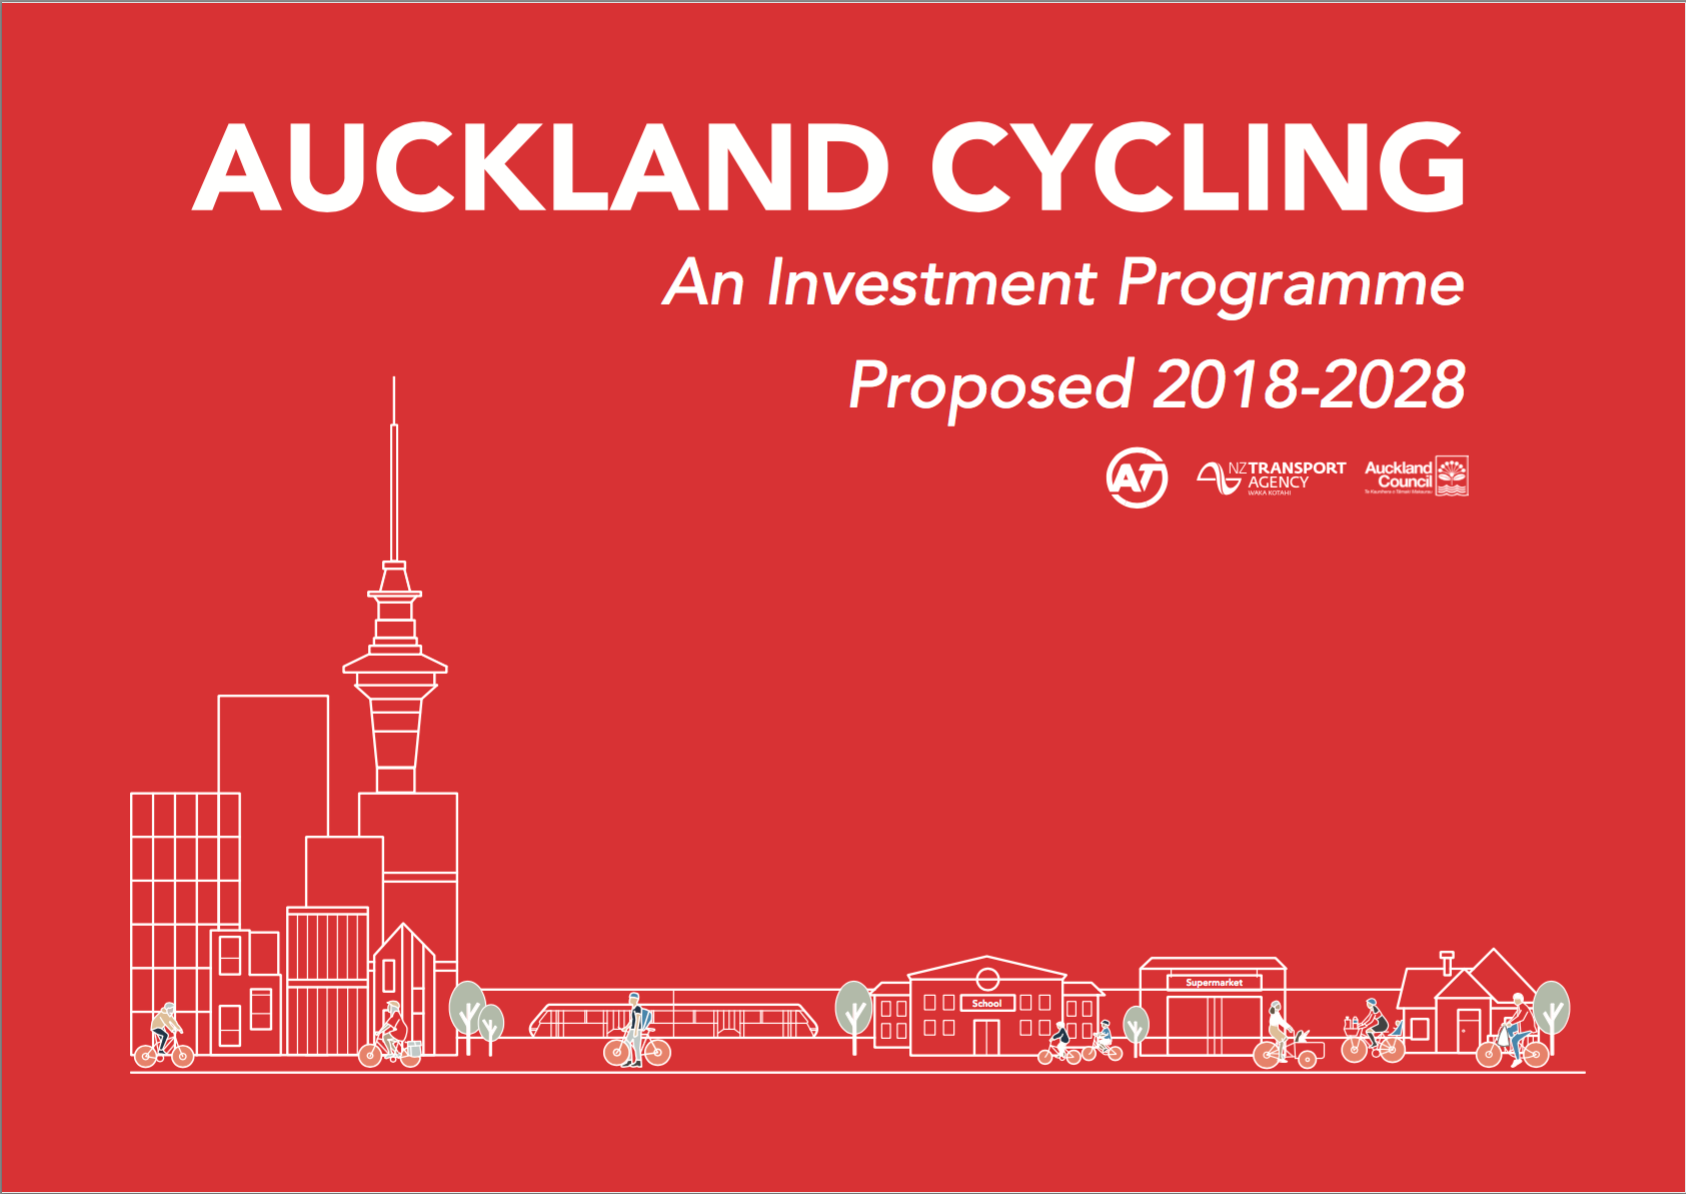 AucklandCyclingProposal.png